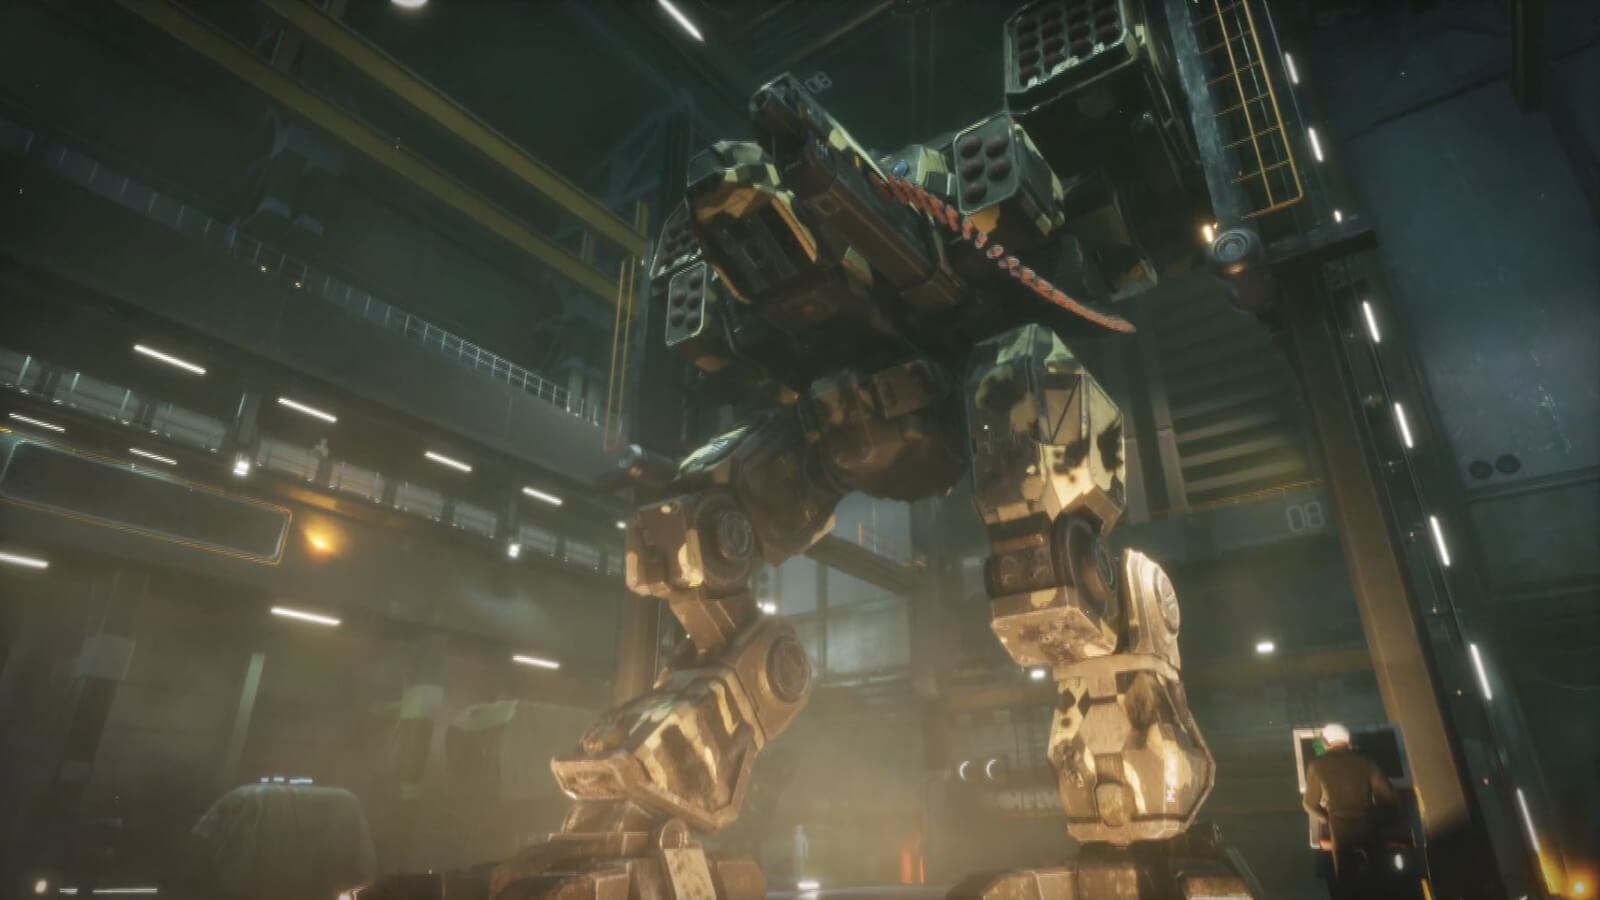 Seen from below, a gigantic armored battle mech stands in a hangar.